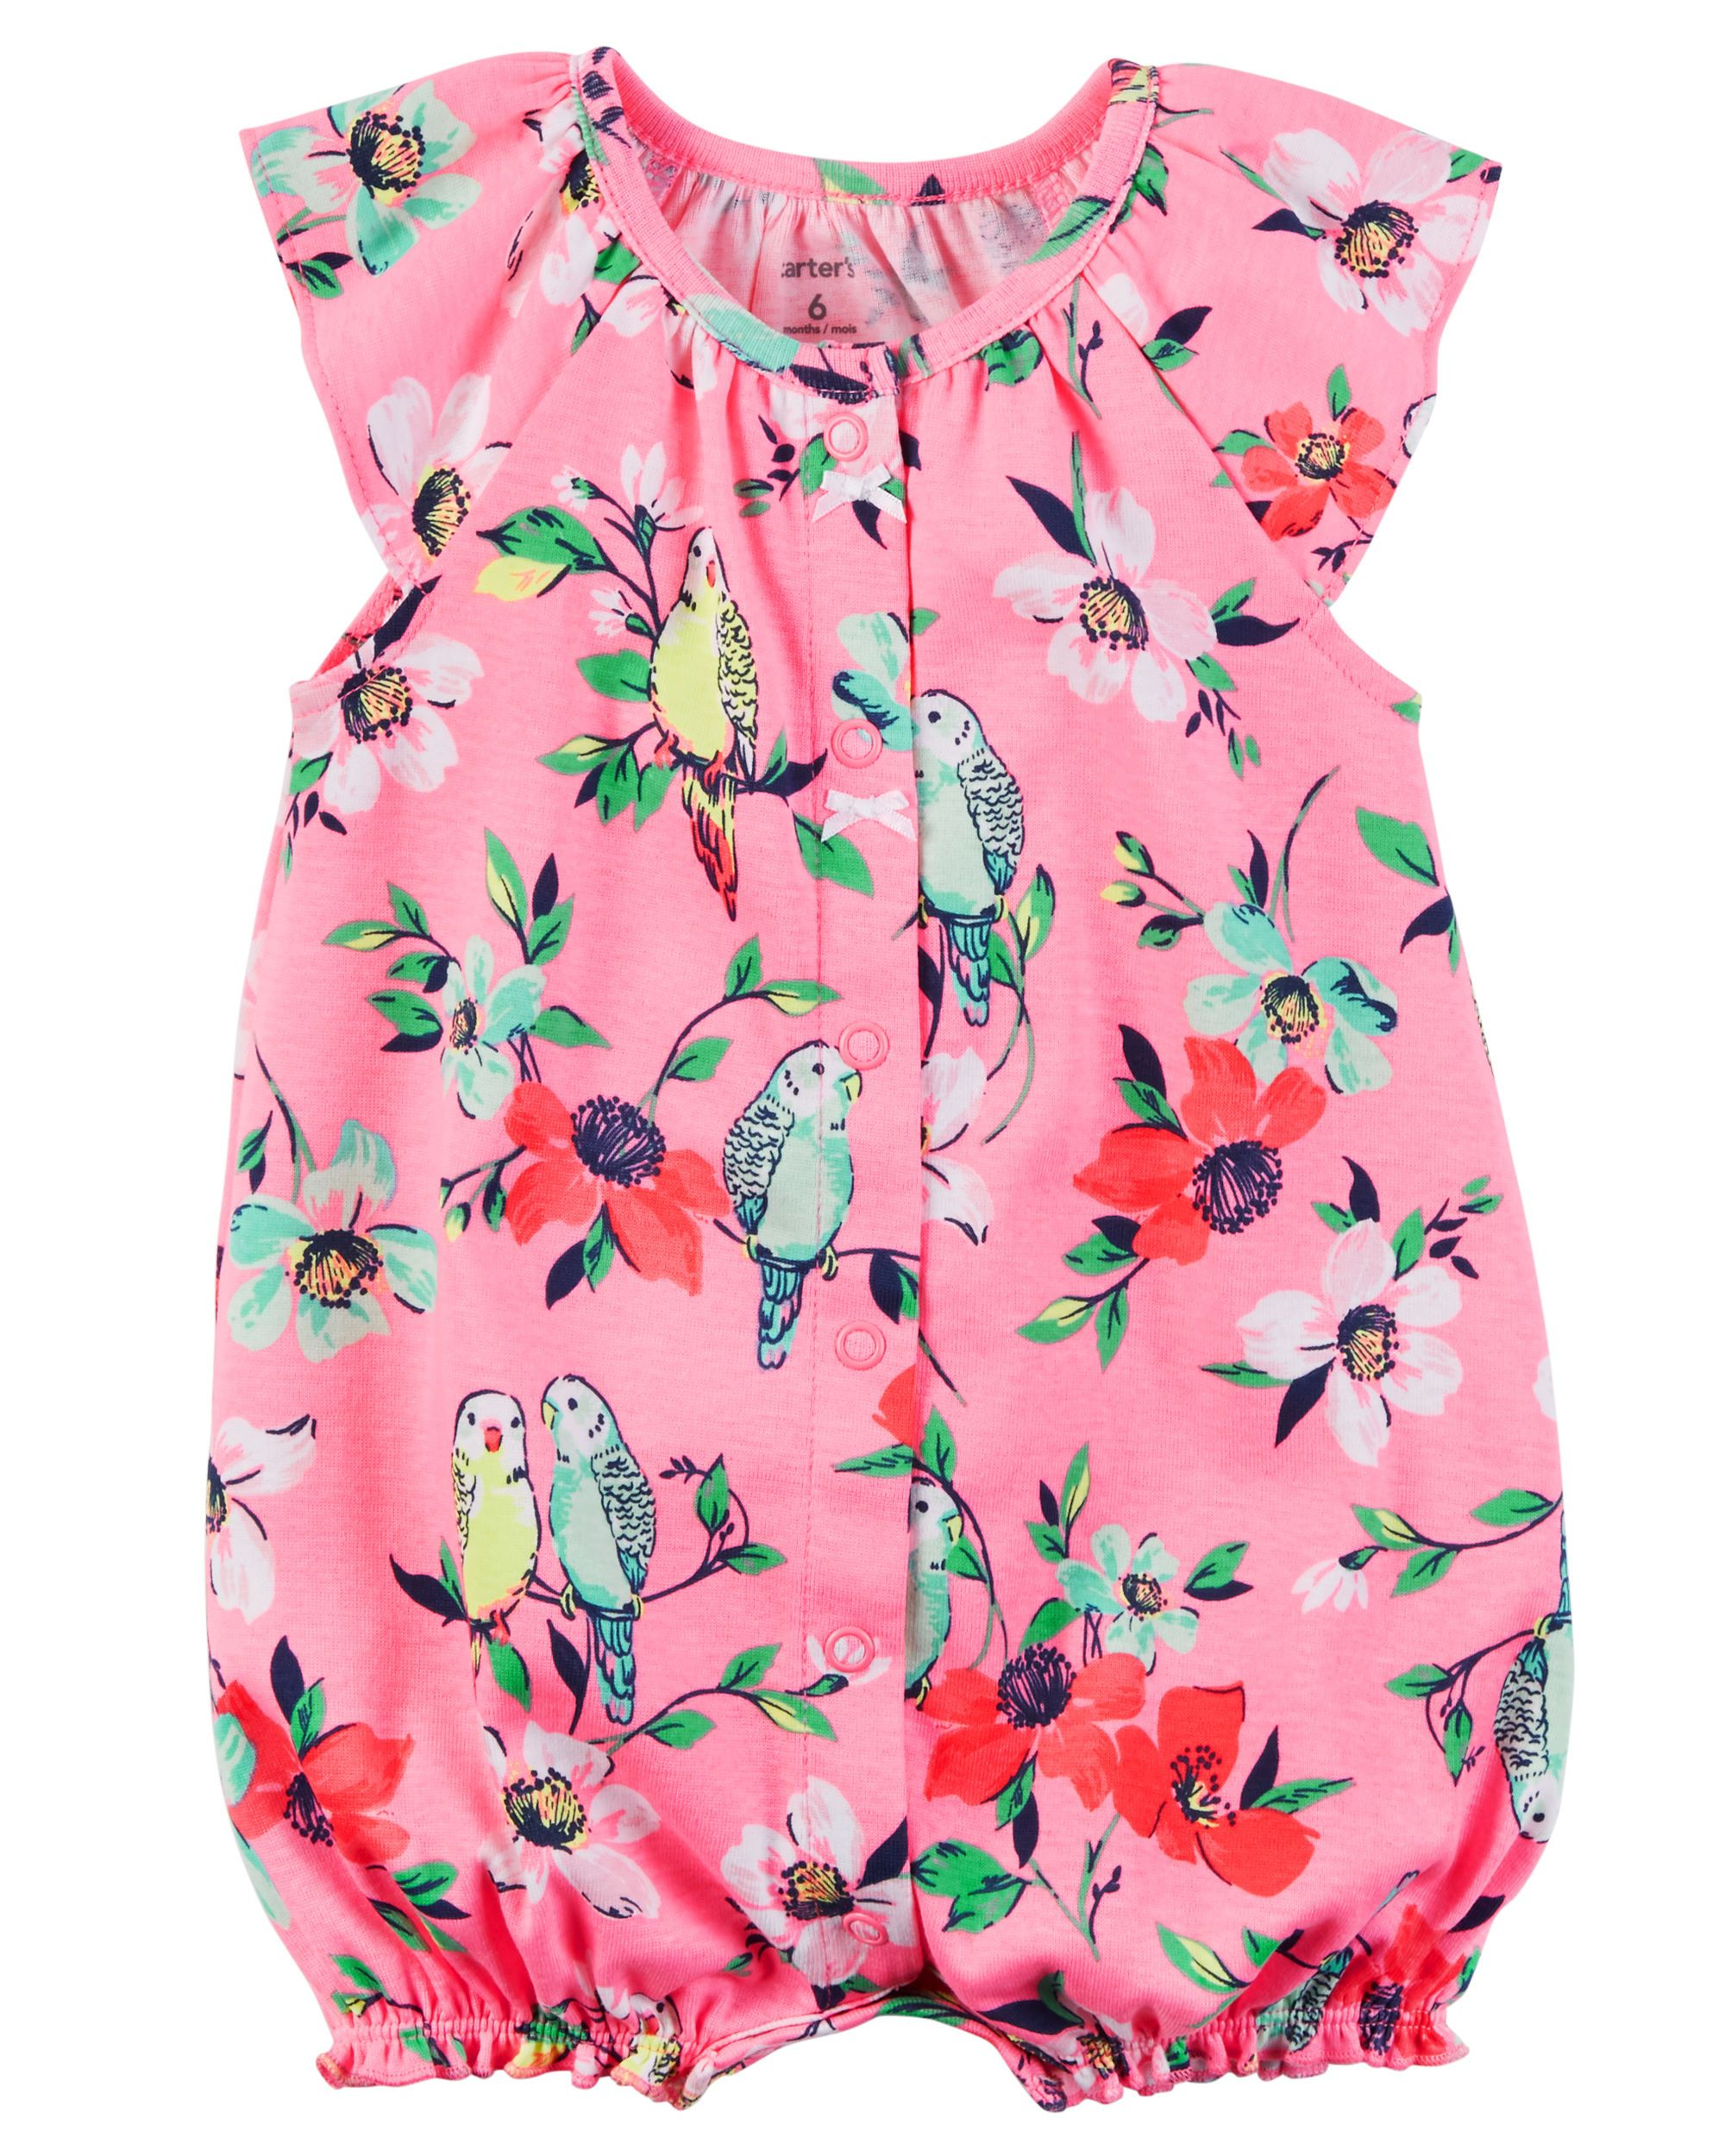 6a1176d4b1ac Baby Girl Snap-Up Cotton Romper from Carters.com. Shop clothing    accessories from a trusted name in kids